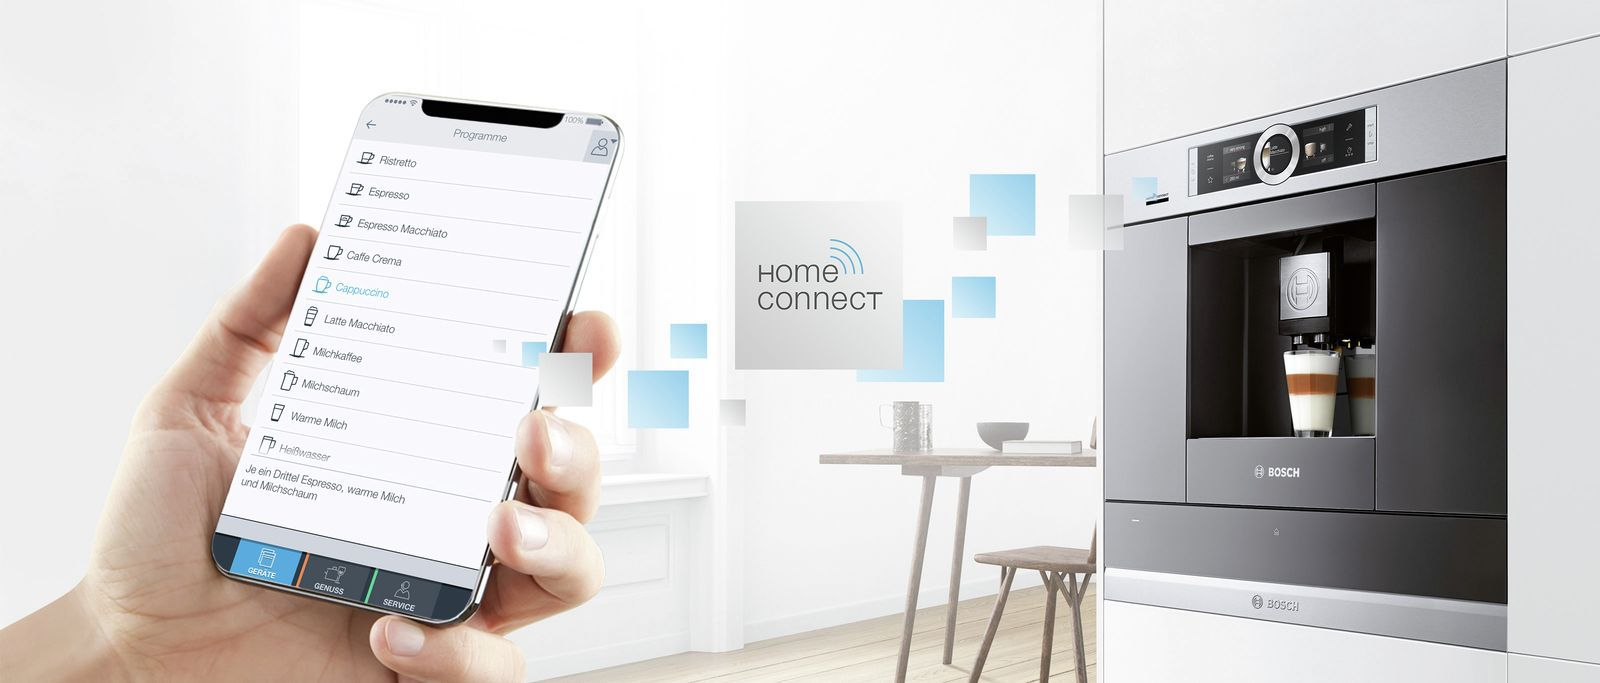 Bosch Kaffeevollautomaten mit Home Connect Funktion